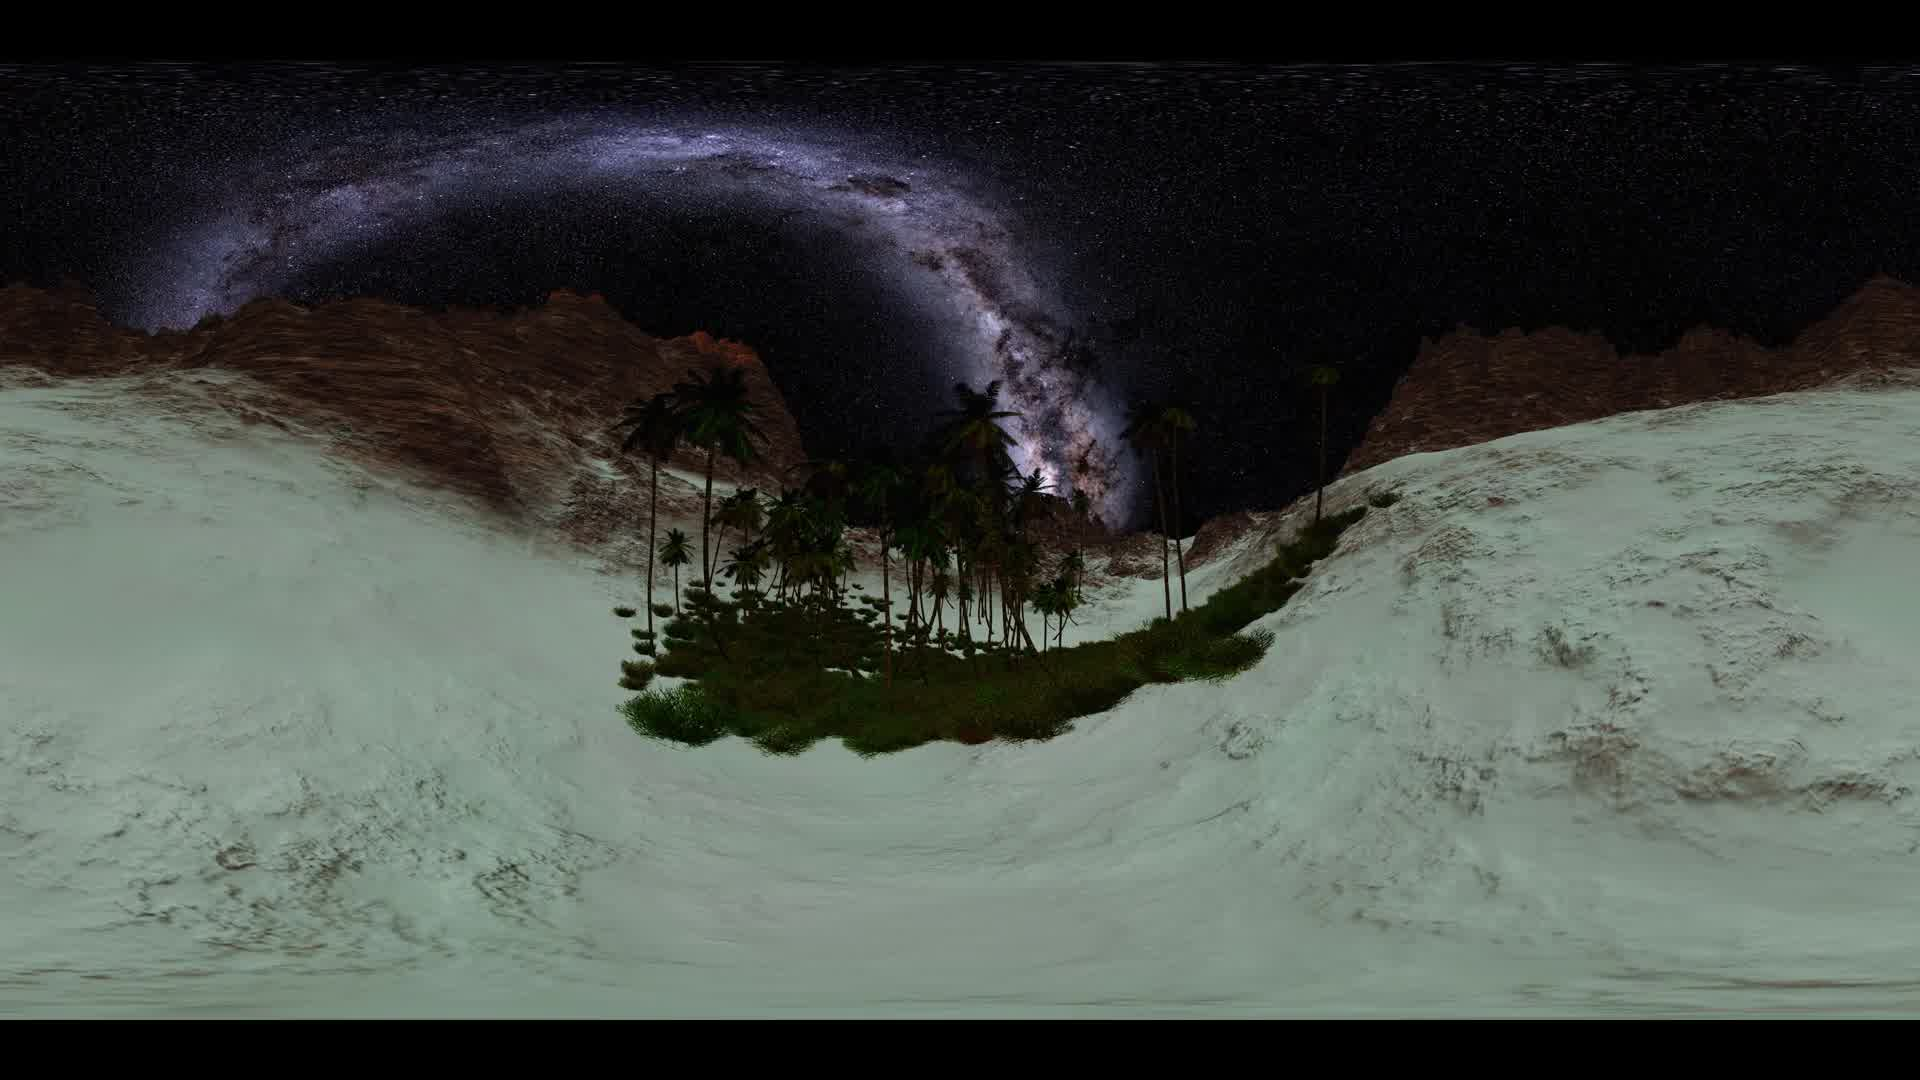 6K vr 360 Milky Way stars timelapse at sunset in sand mountains and pams oasis. virtual reality 360 degree video. vr360